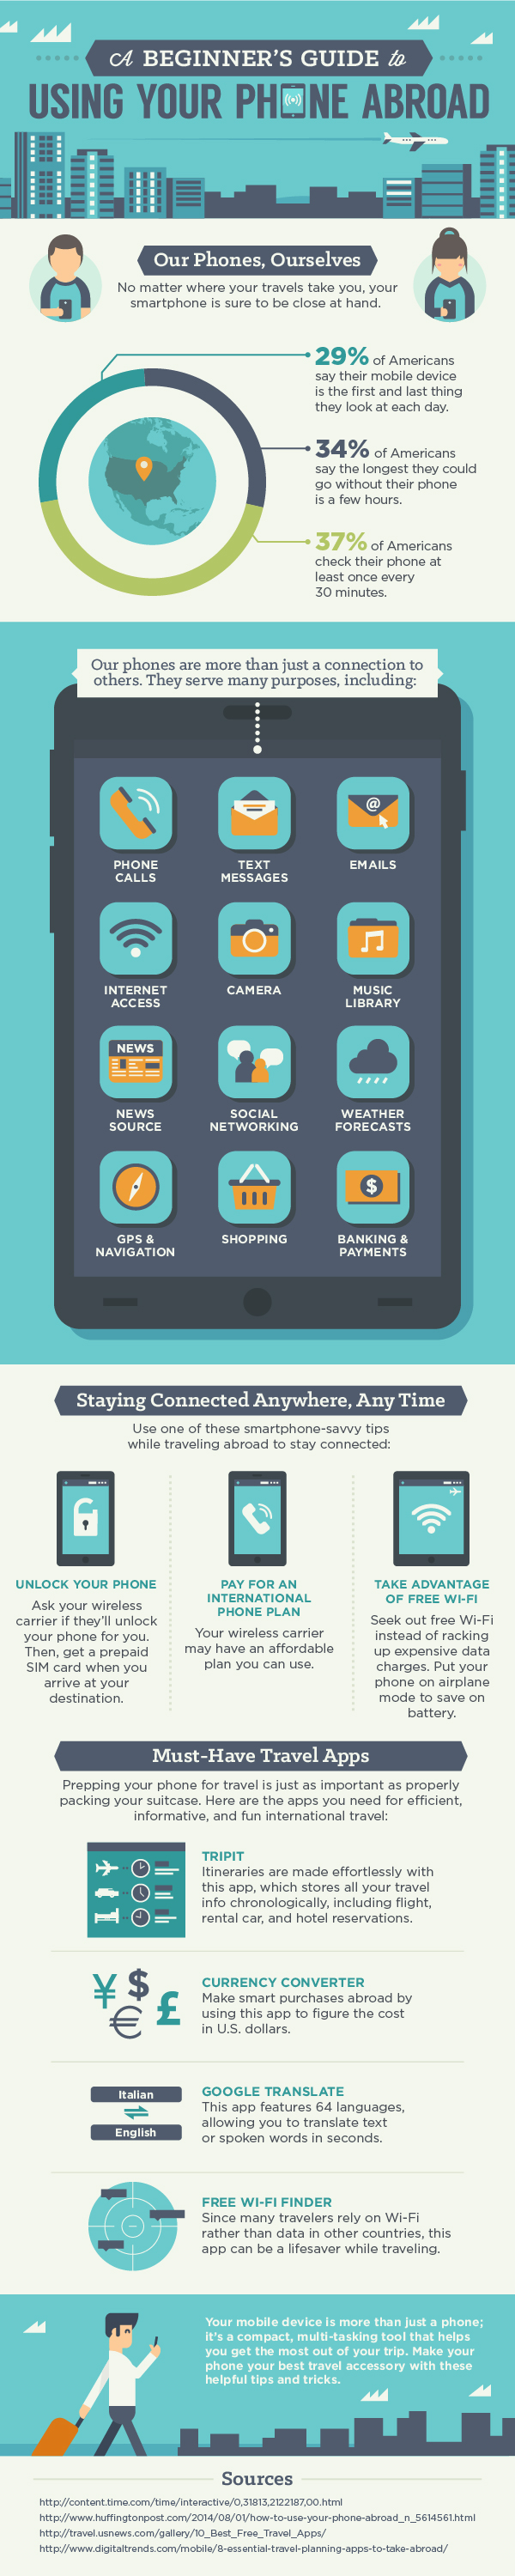 Travel tips for staying connected on your cell phone! #mobile #tips #travel #infographic www.1fungrltravels.com